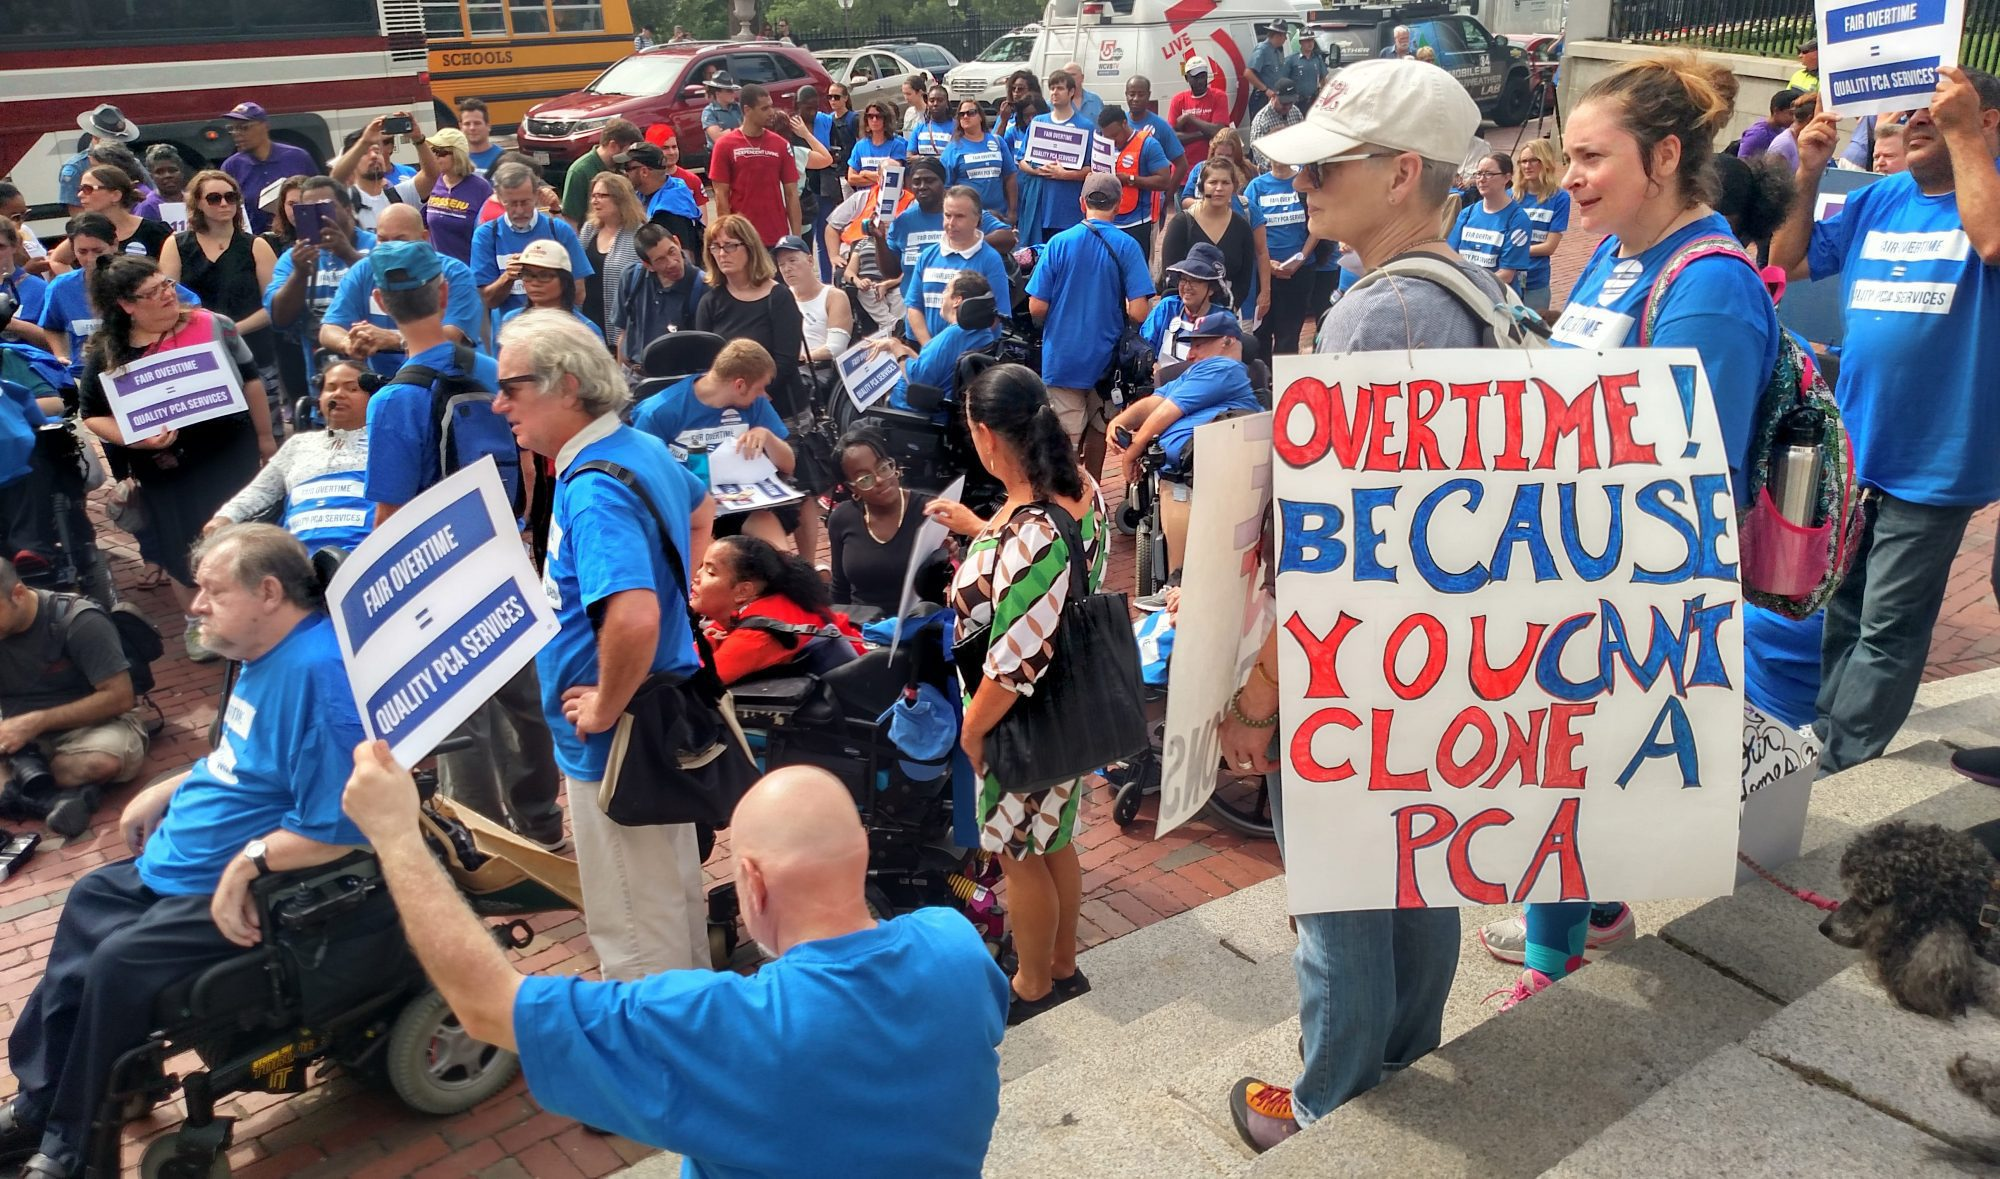 A large group of people rally in front of the State House wearing blue t-shirts. Sign reads Overtime! Because You Can't Clone A PCA!